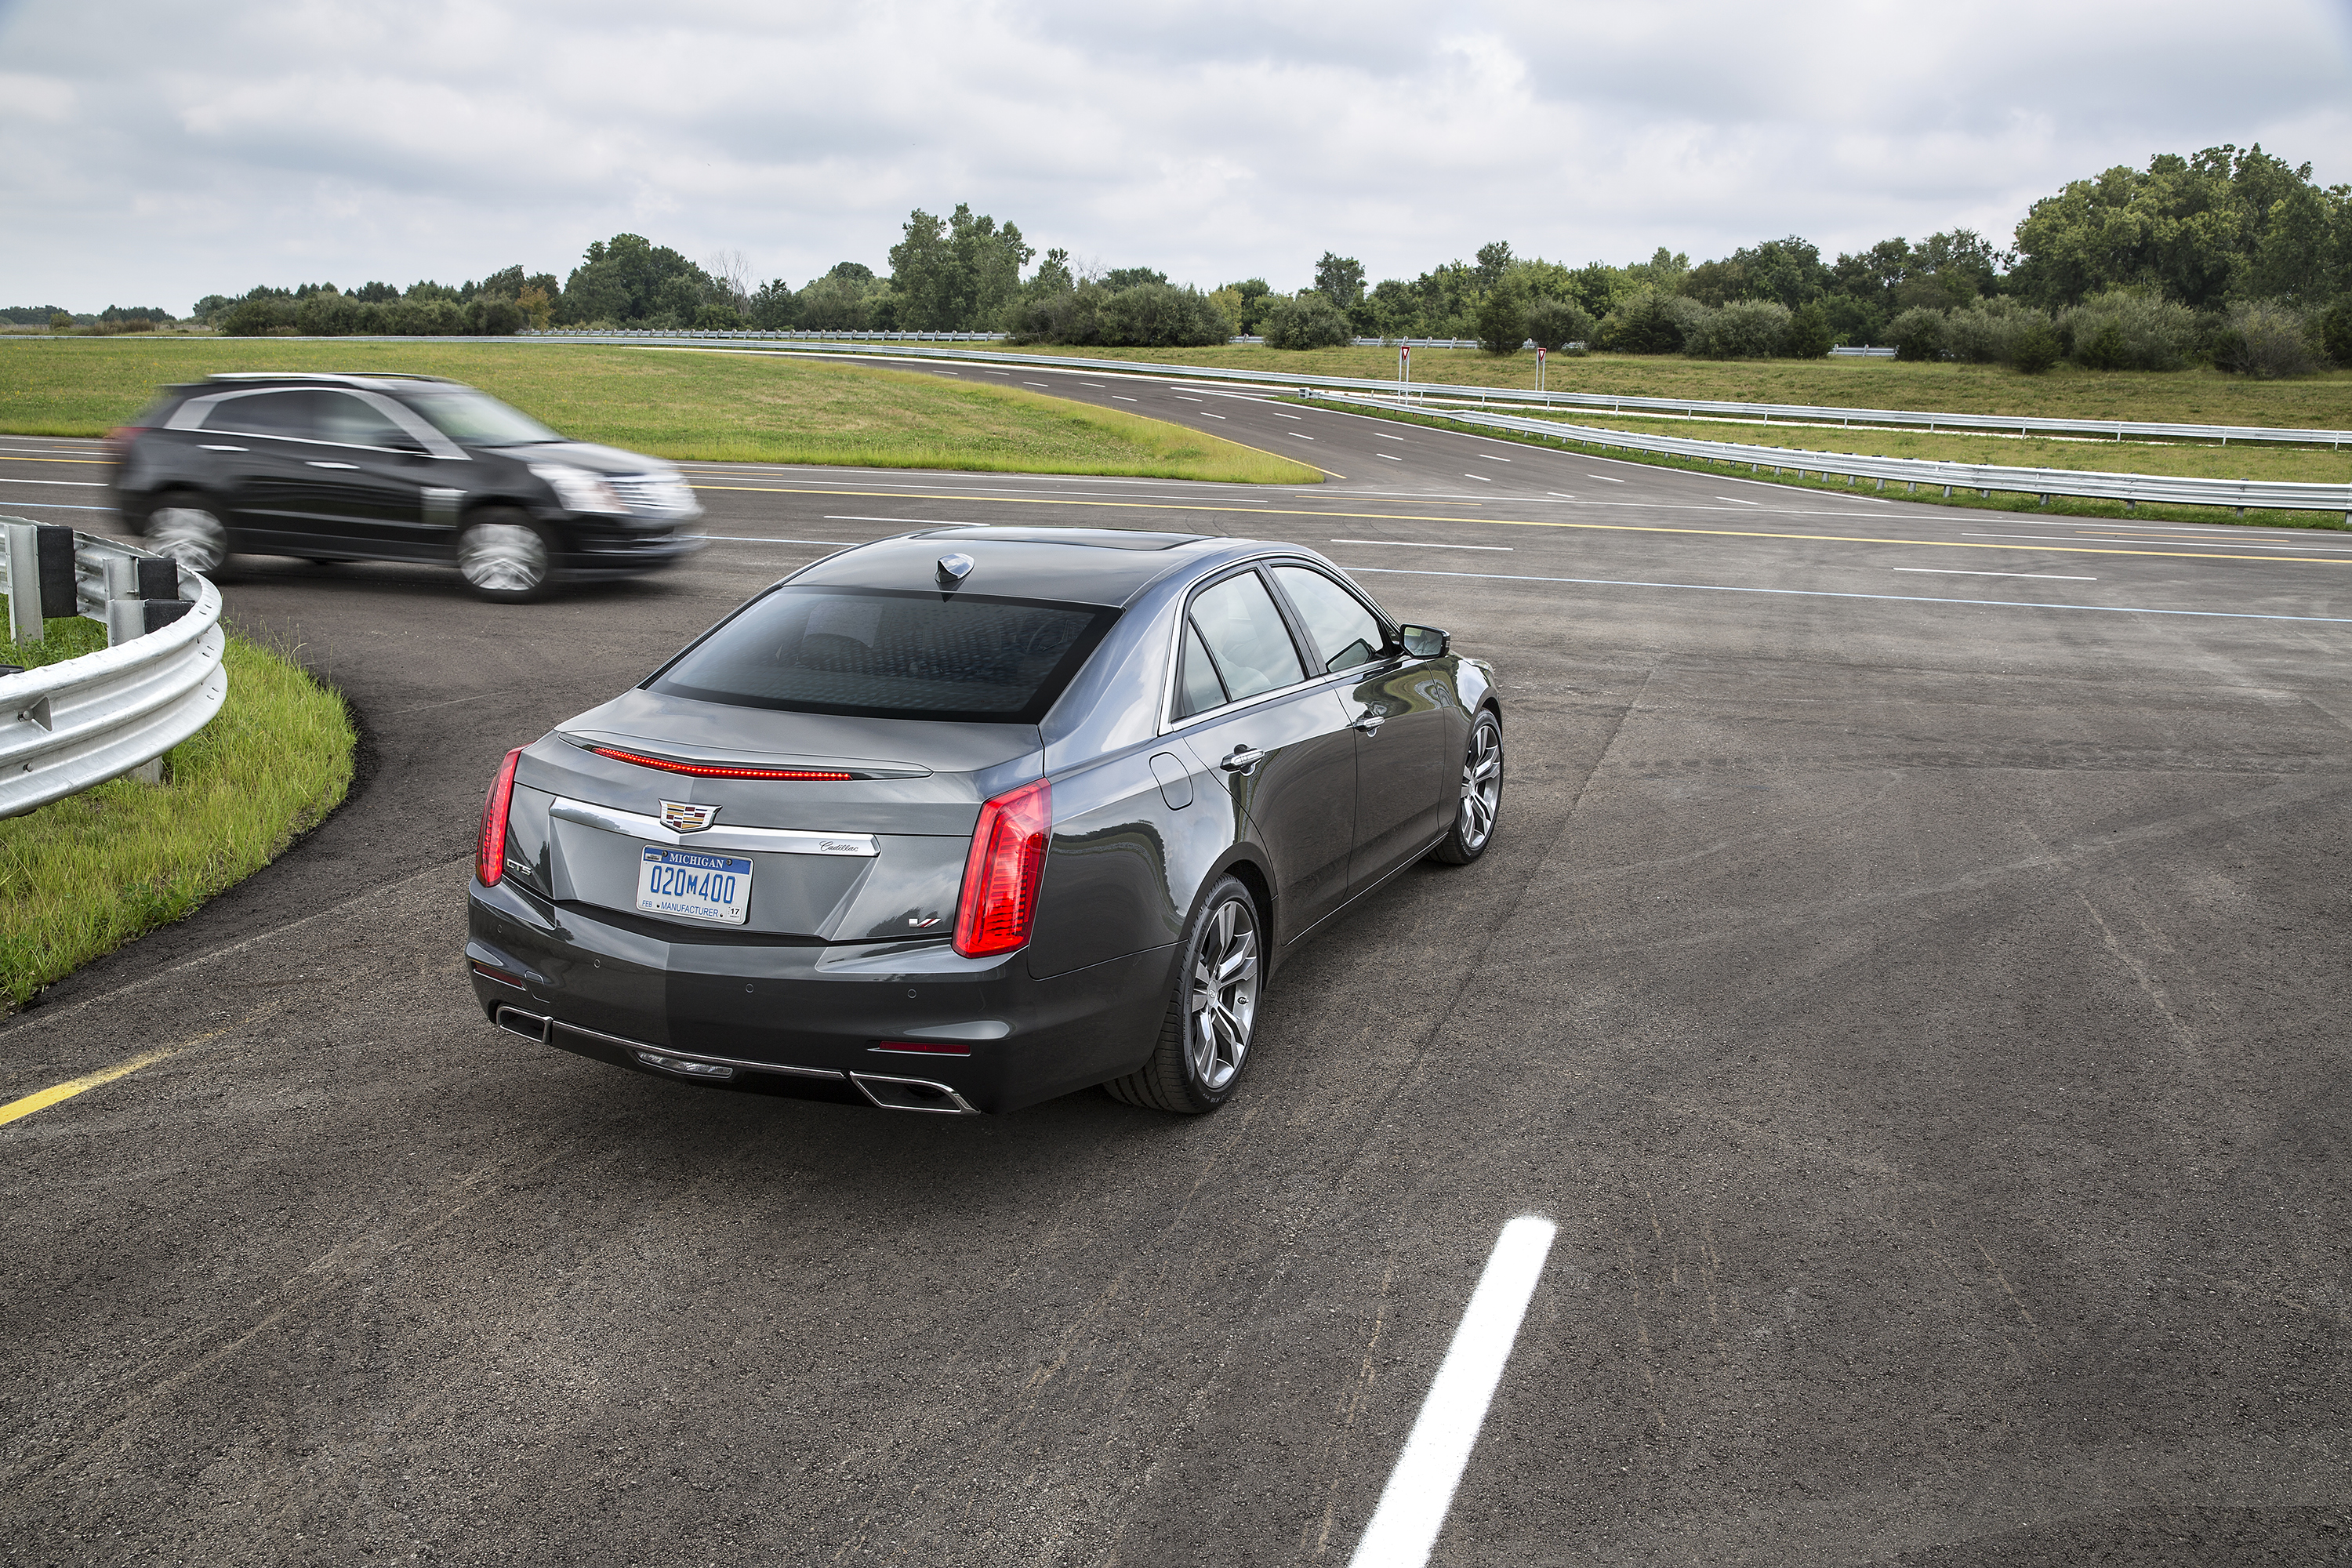 Cadillac'-s New Sedan Can Talk to Other Cars | WIRED